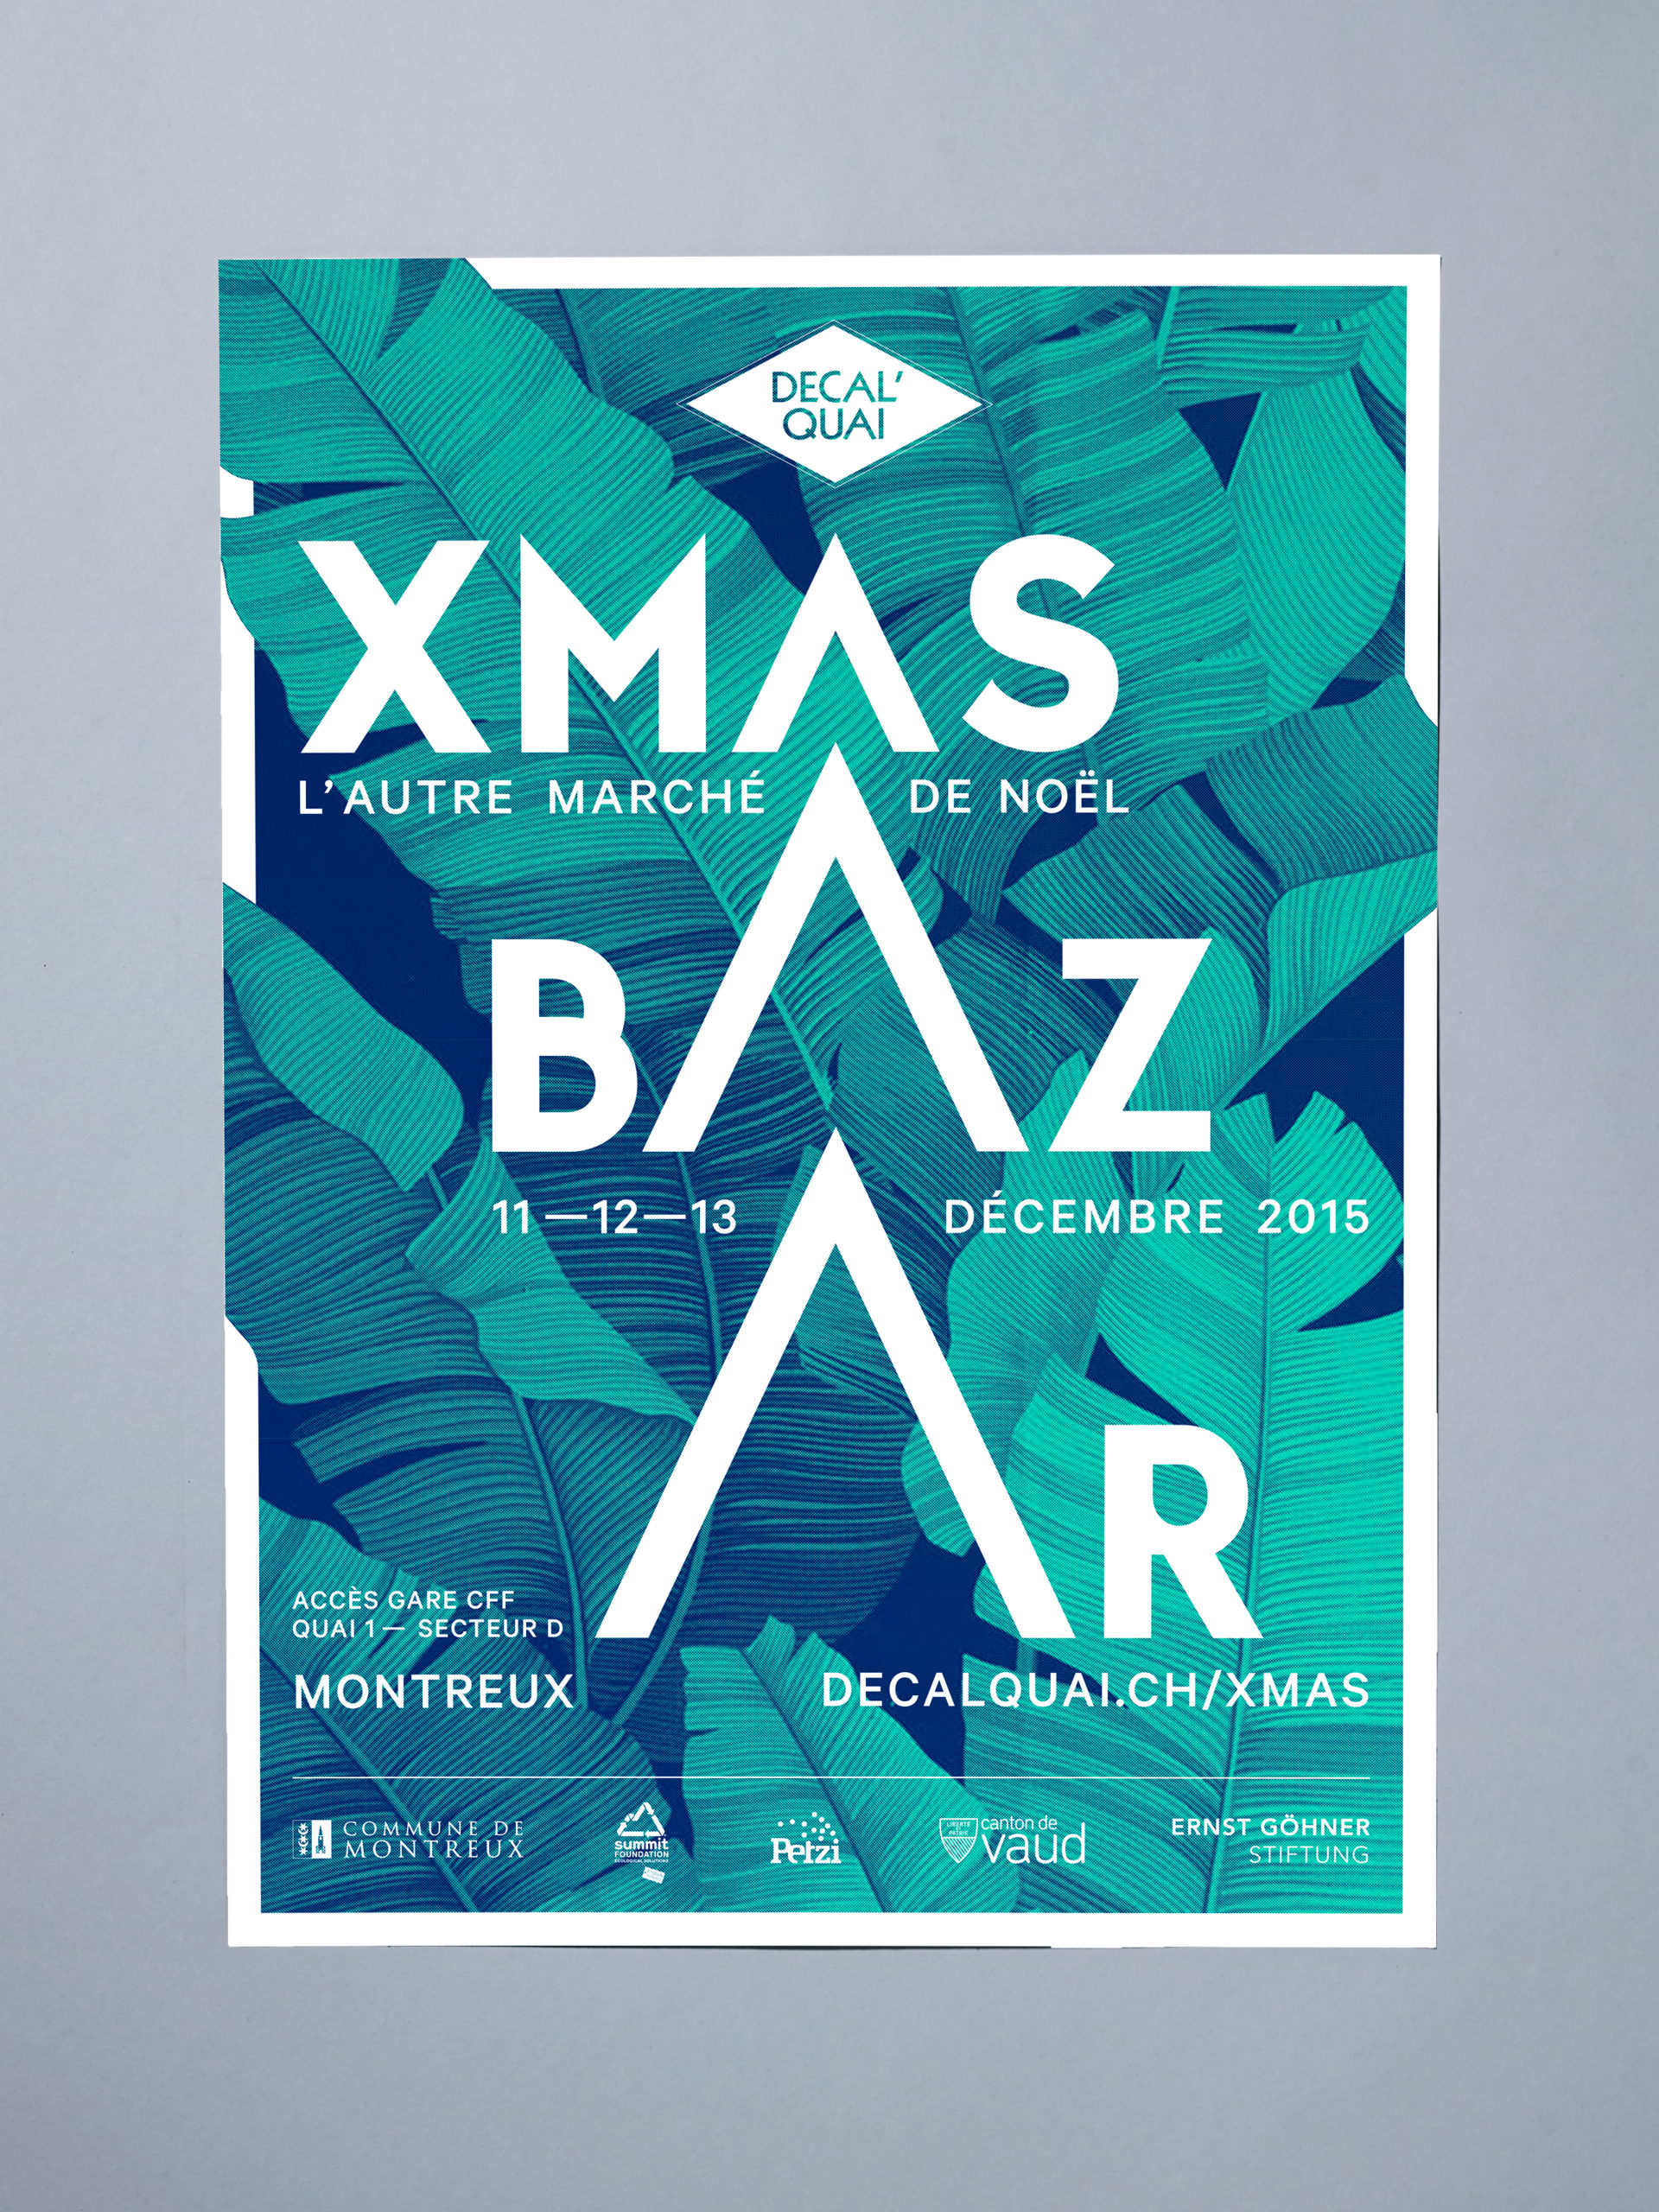 Xmas Bazar Decal'Quai - Avalanche